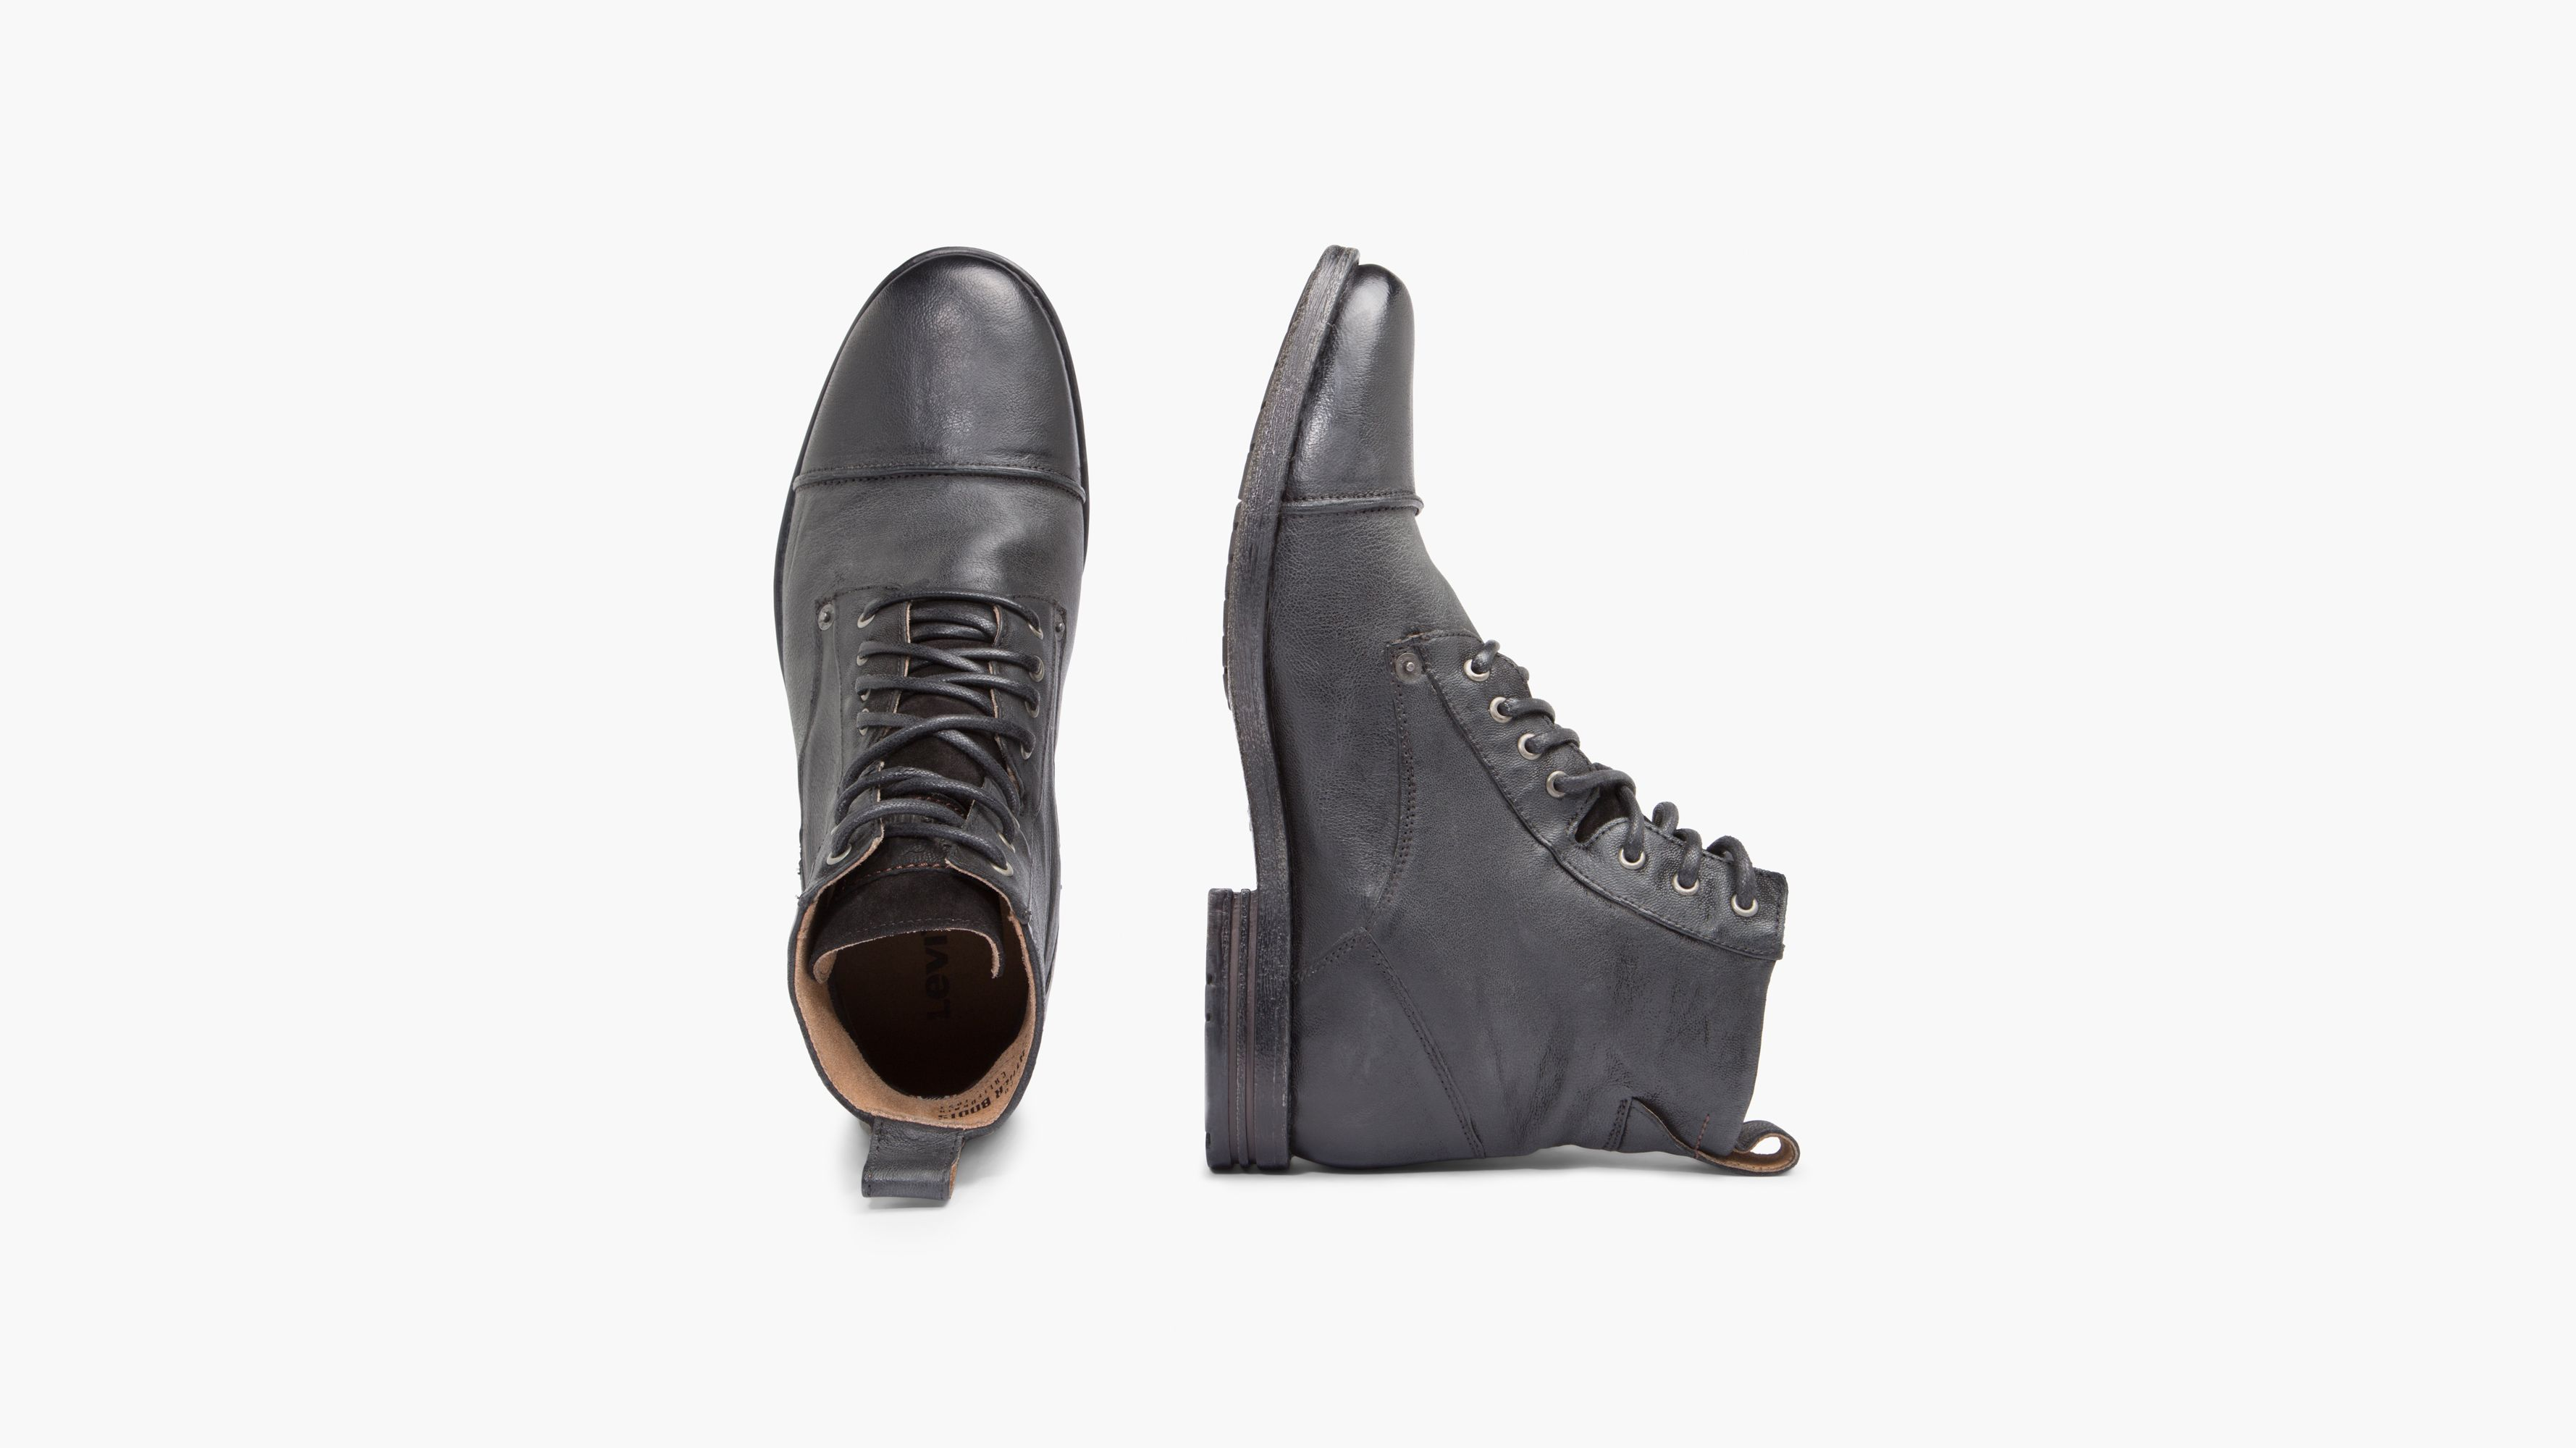 Levis Men's Leather Shoes, Emerson Ankle Boots Black or Brown